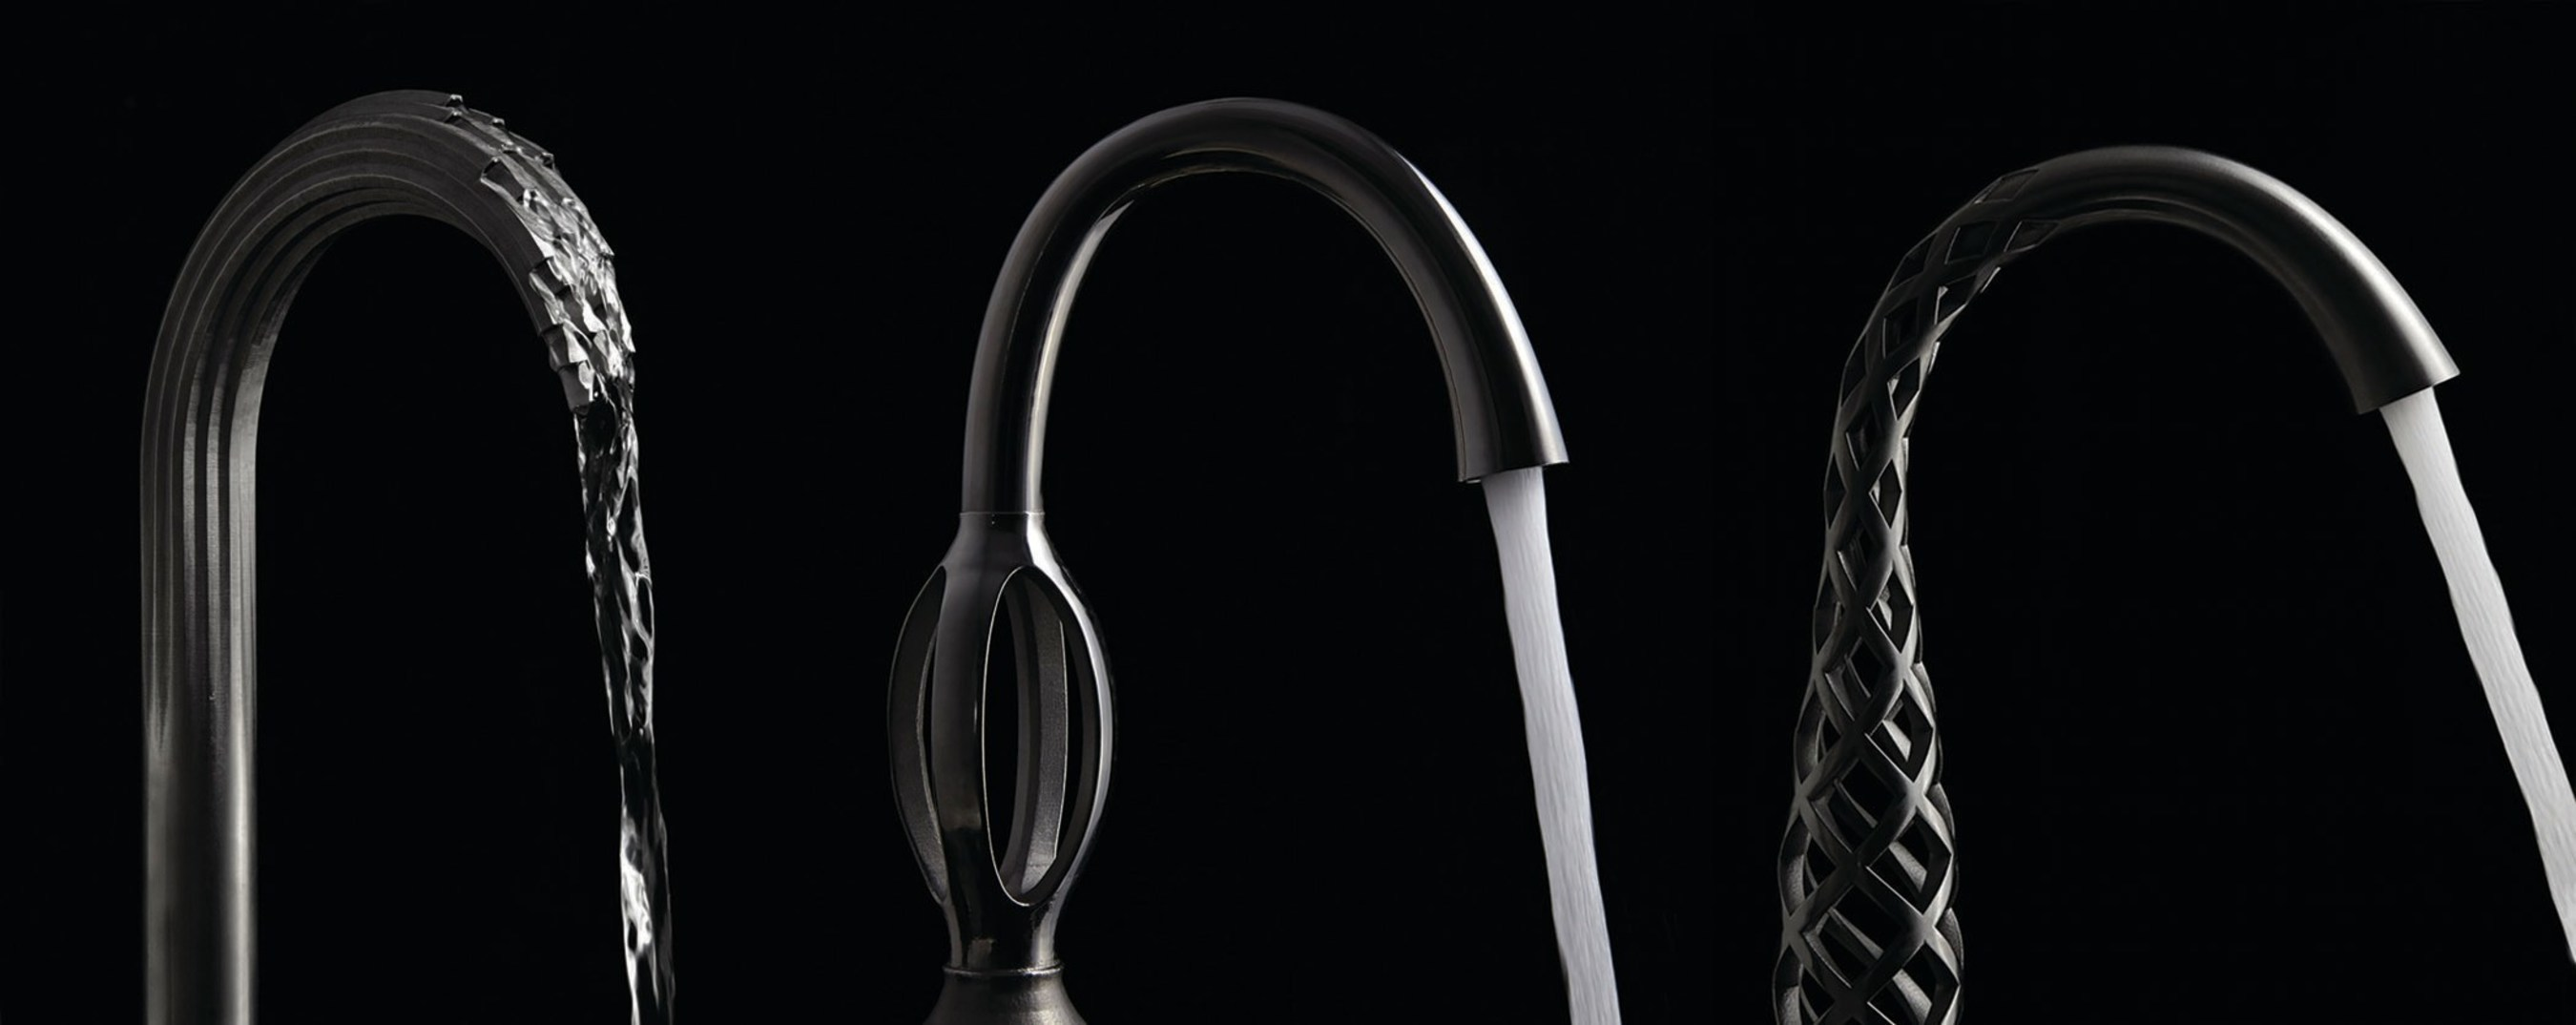 American Standard Unveils New Collections and 3D Printed Metal ...